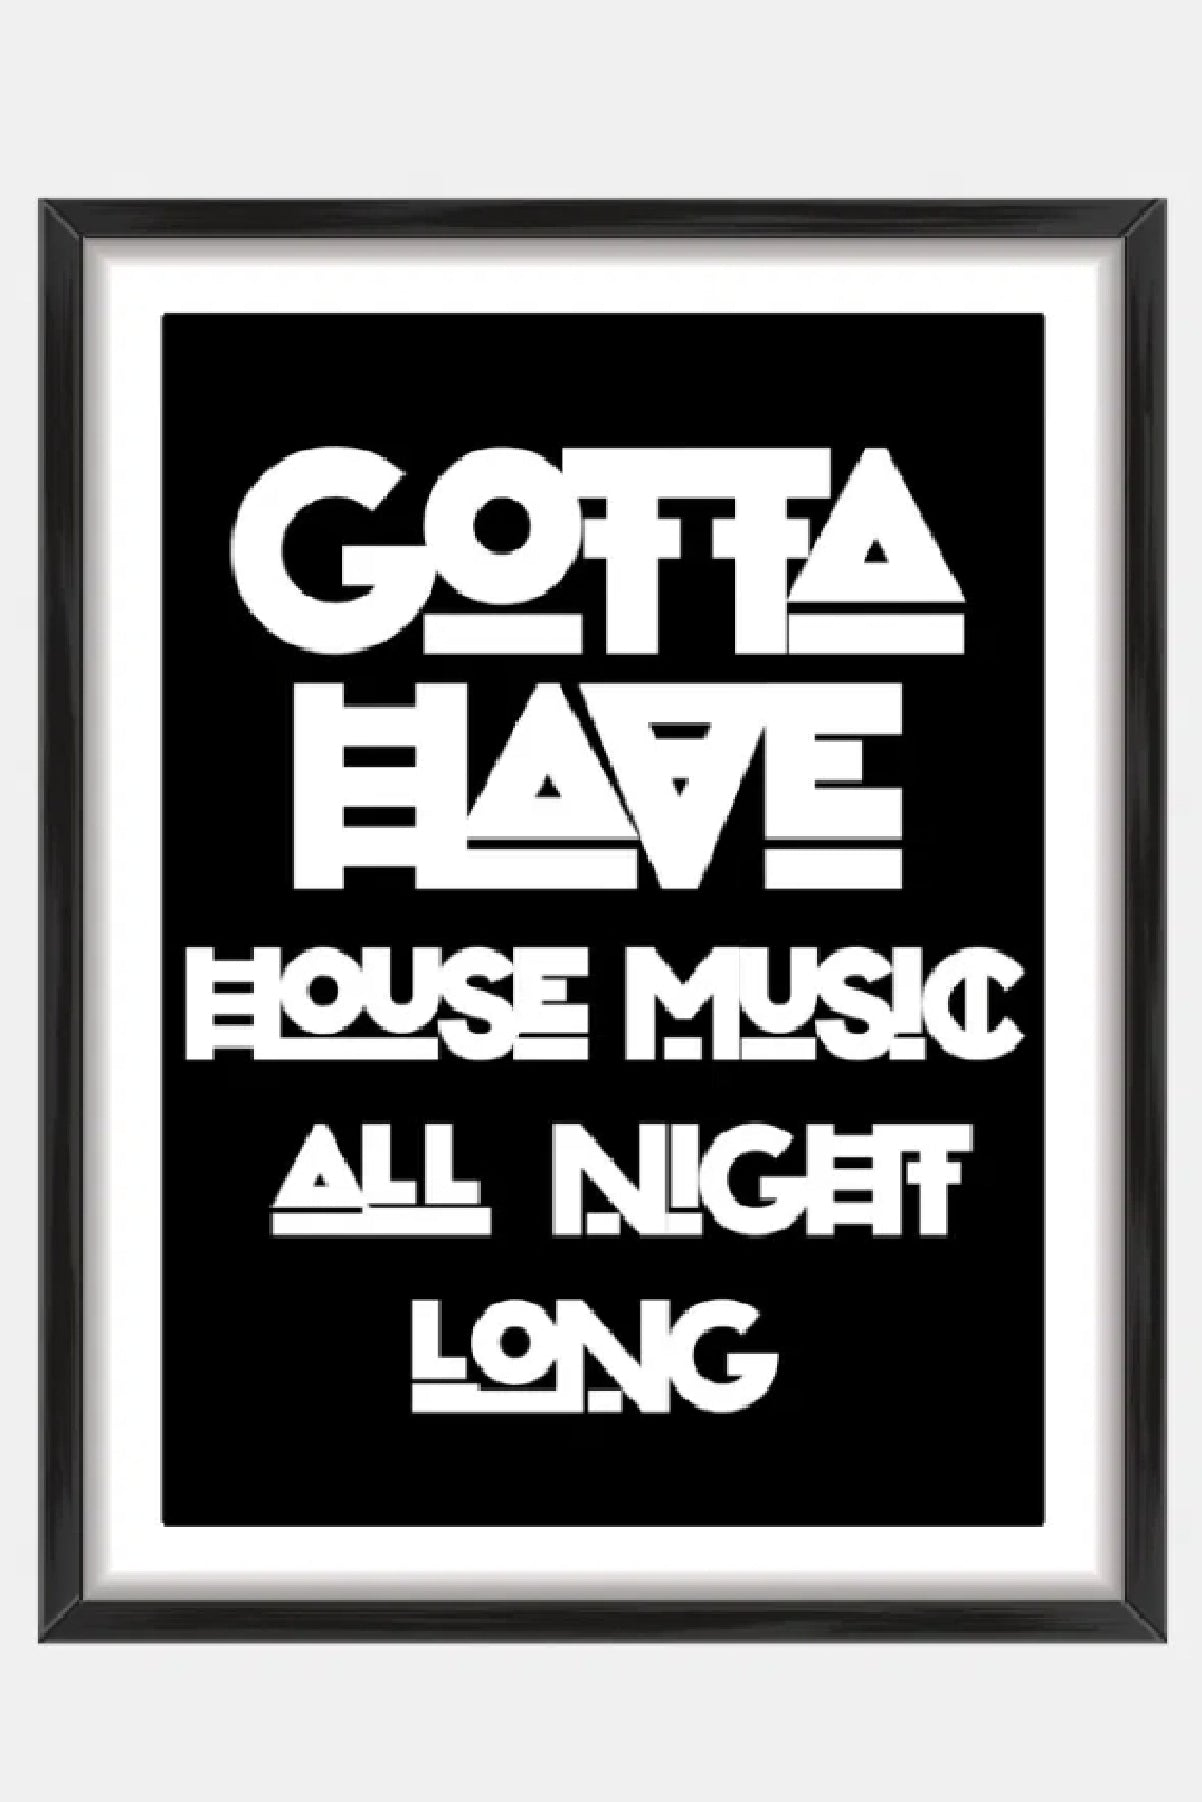 Gotta have house music print